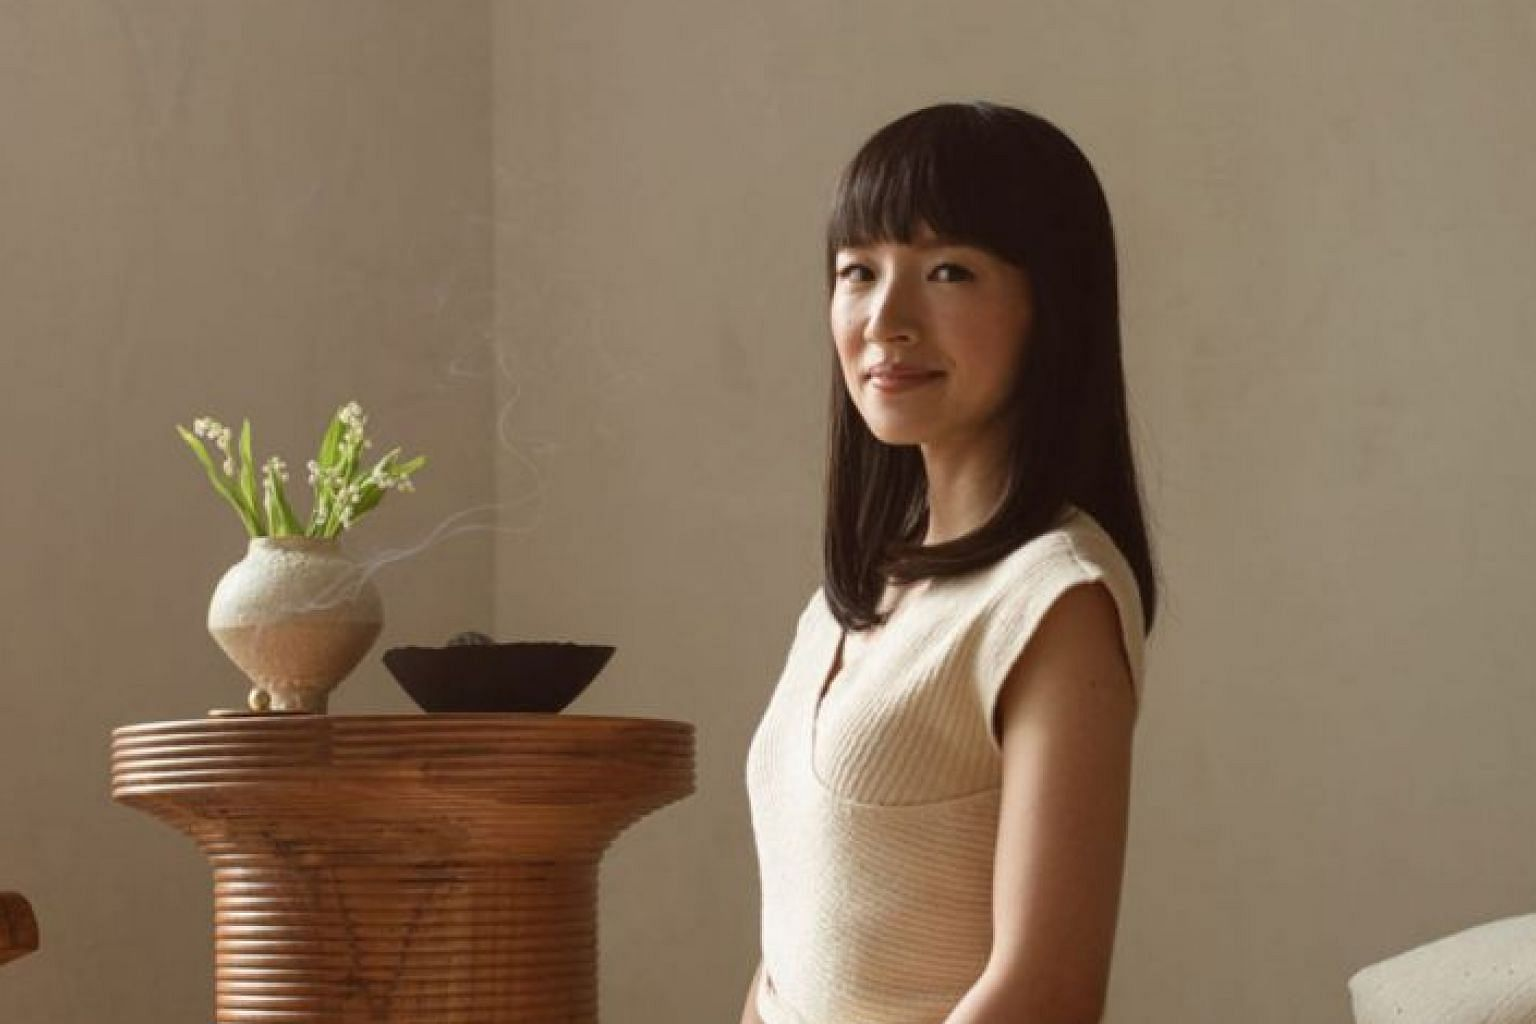 To much of the outside world, Japan's minimalist martinet Marie Kondo's tidiness schtick has seemed like an extension of the culture that produced her, but the truth is that Japanese homes and offices are often jammed with clutter, says the writer.